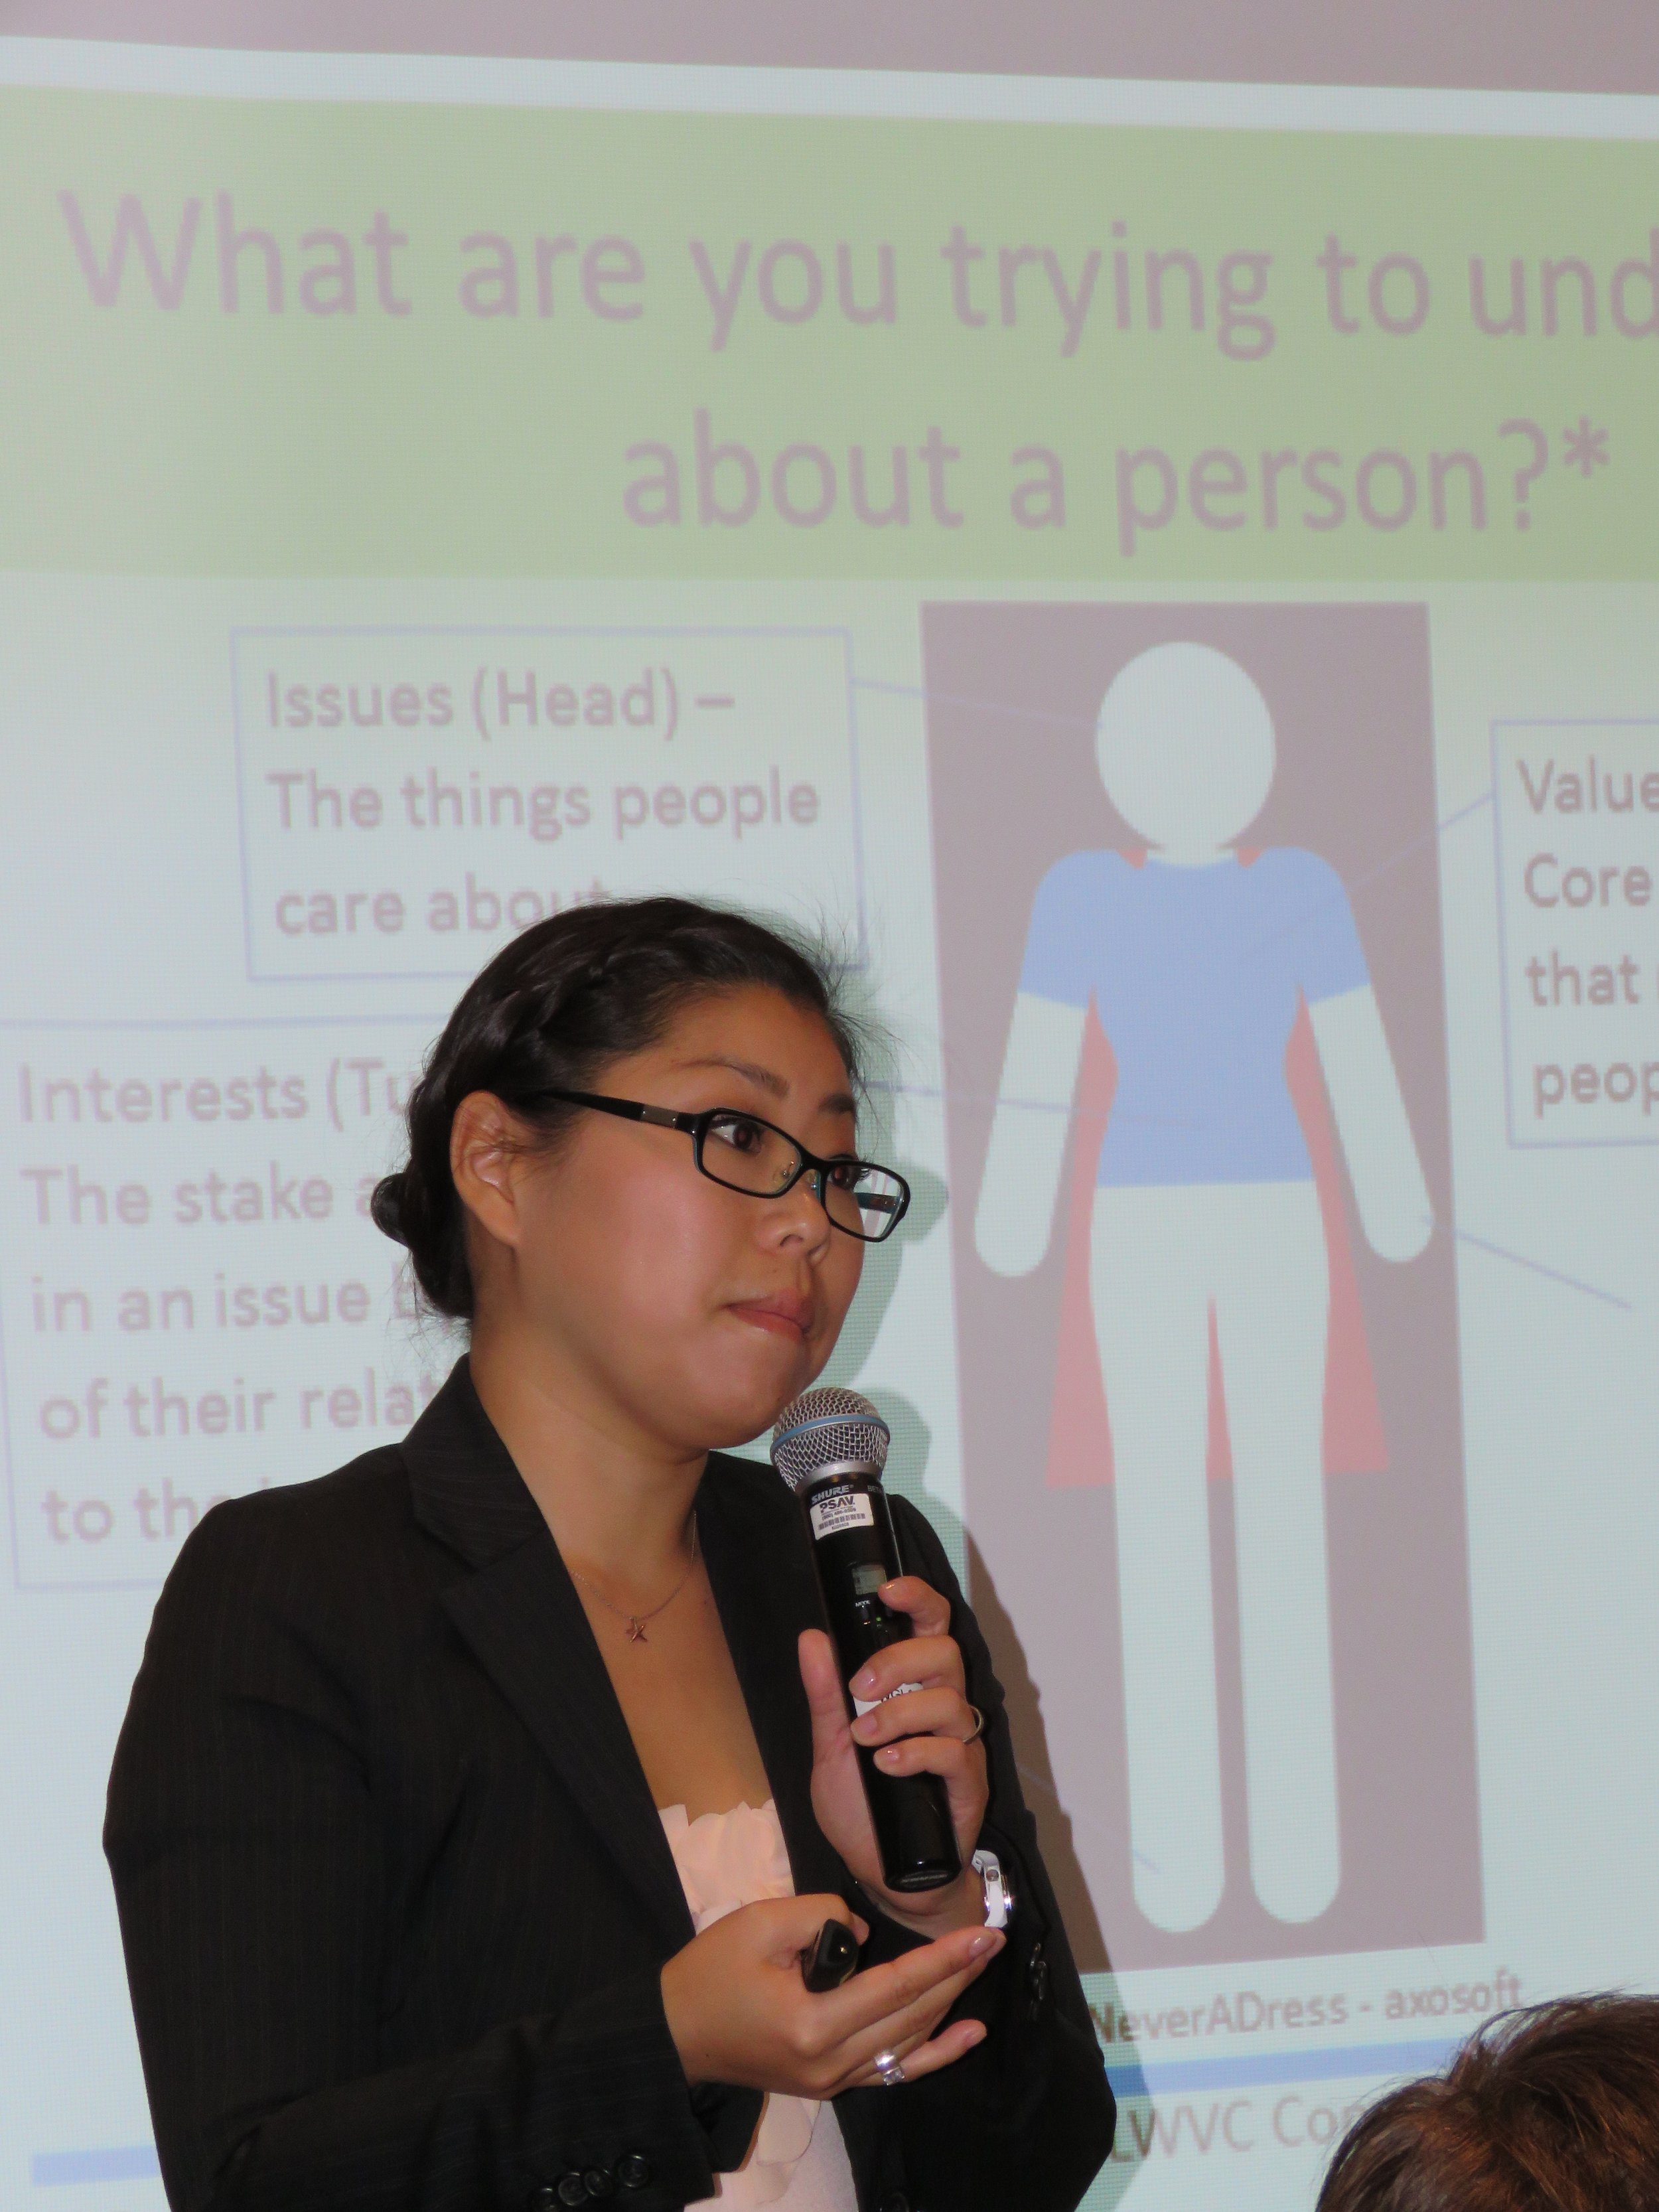 Training on Cultural Competency & Recognizing White Privilege